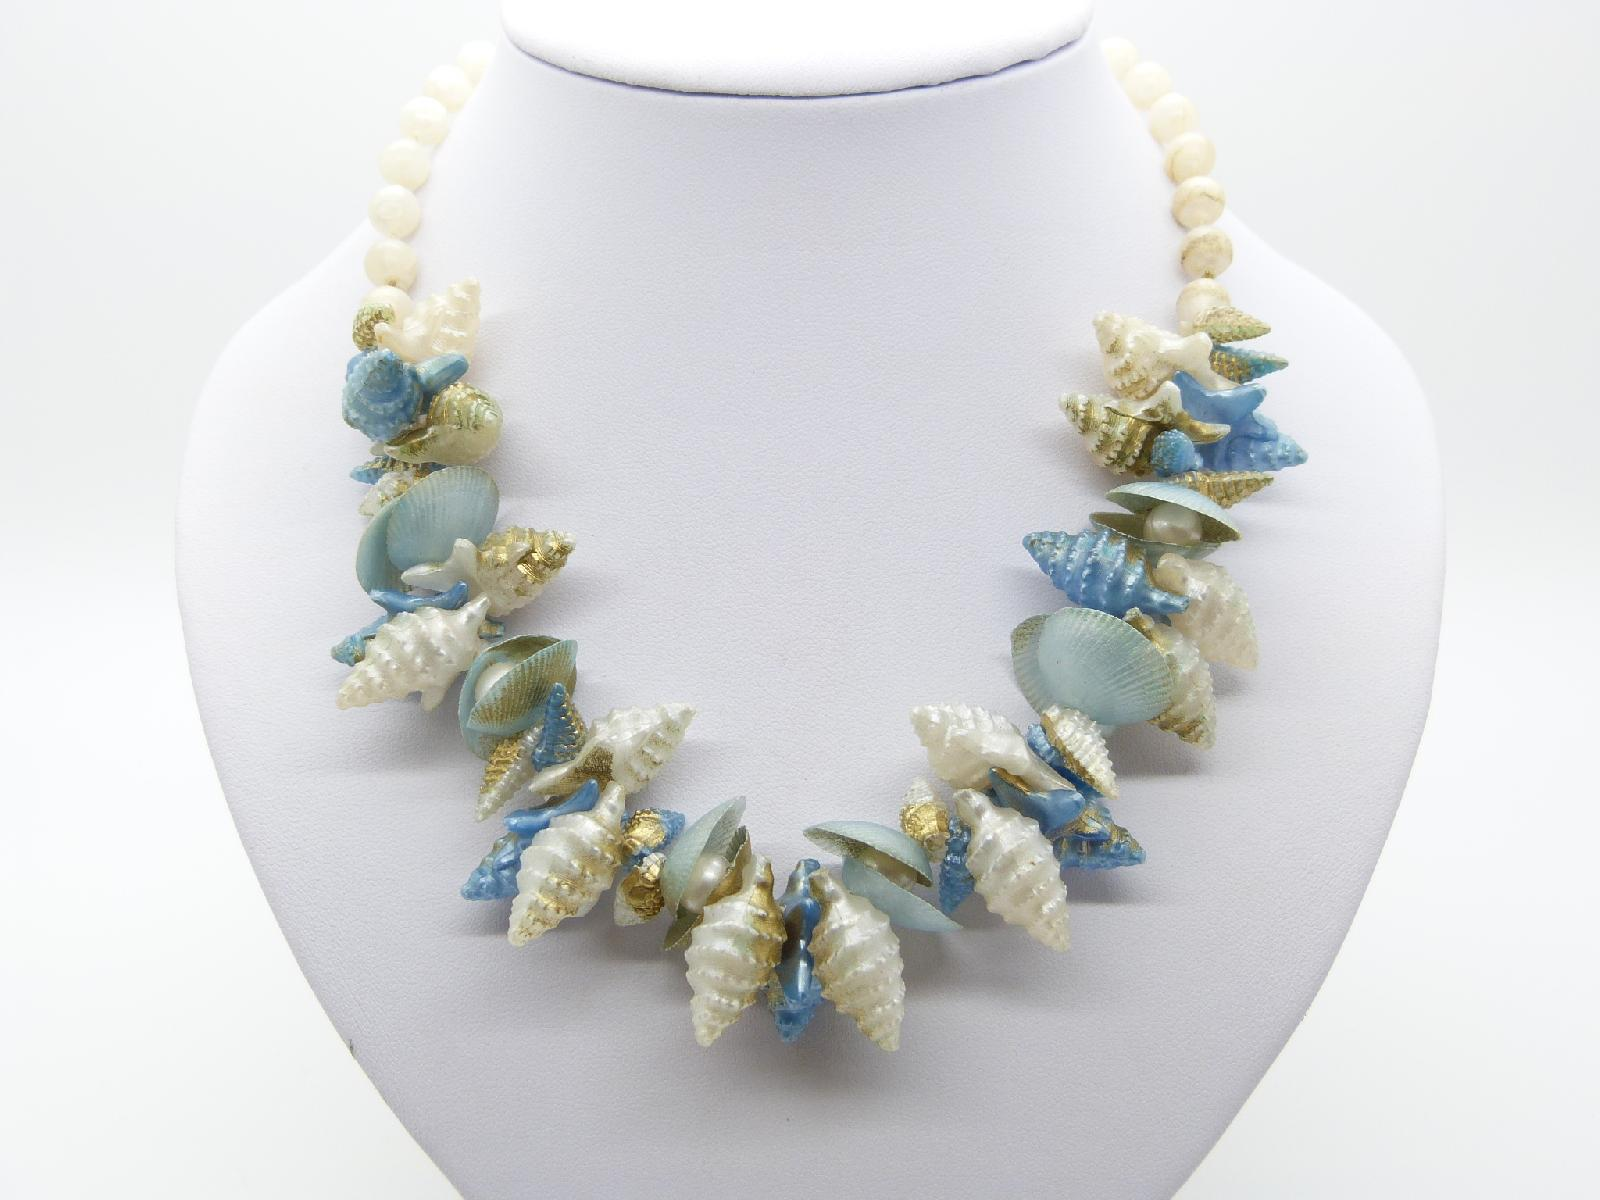 Vintage 50s Quirky White and Blue Plastic Shell Charm Bead Necklace